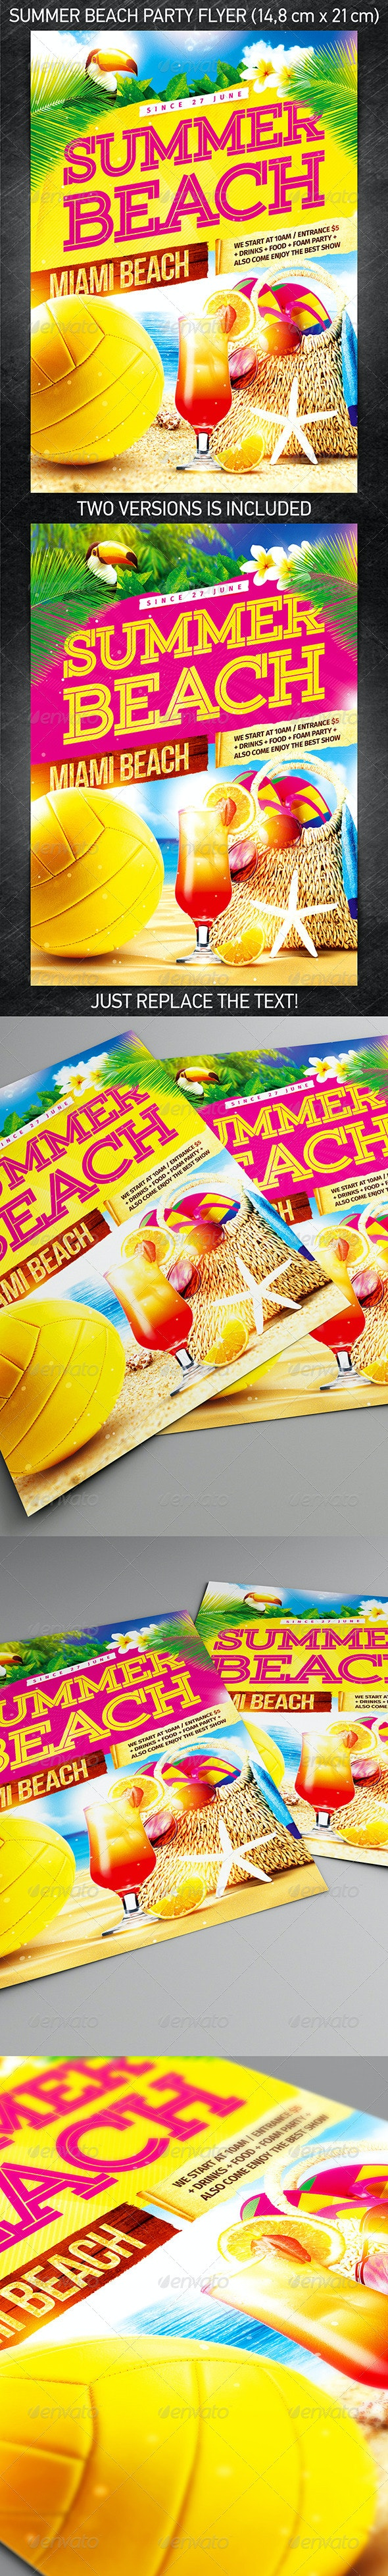 Summer Beach Party Flyer - Events Flyers